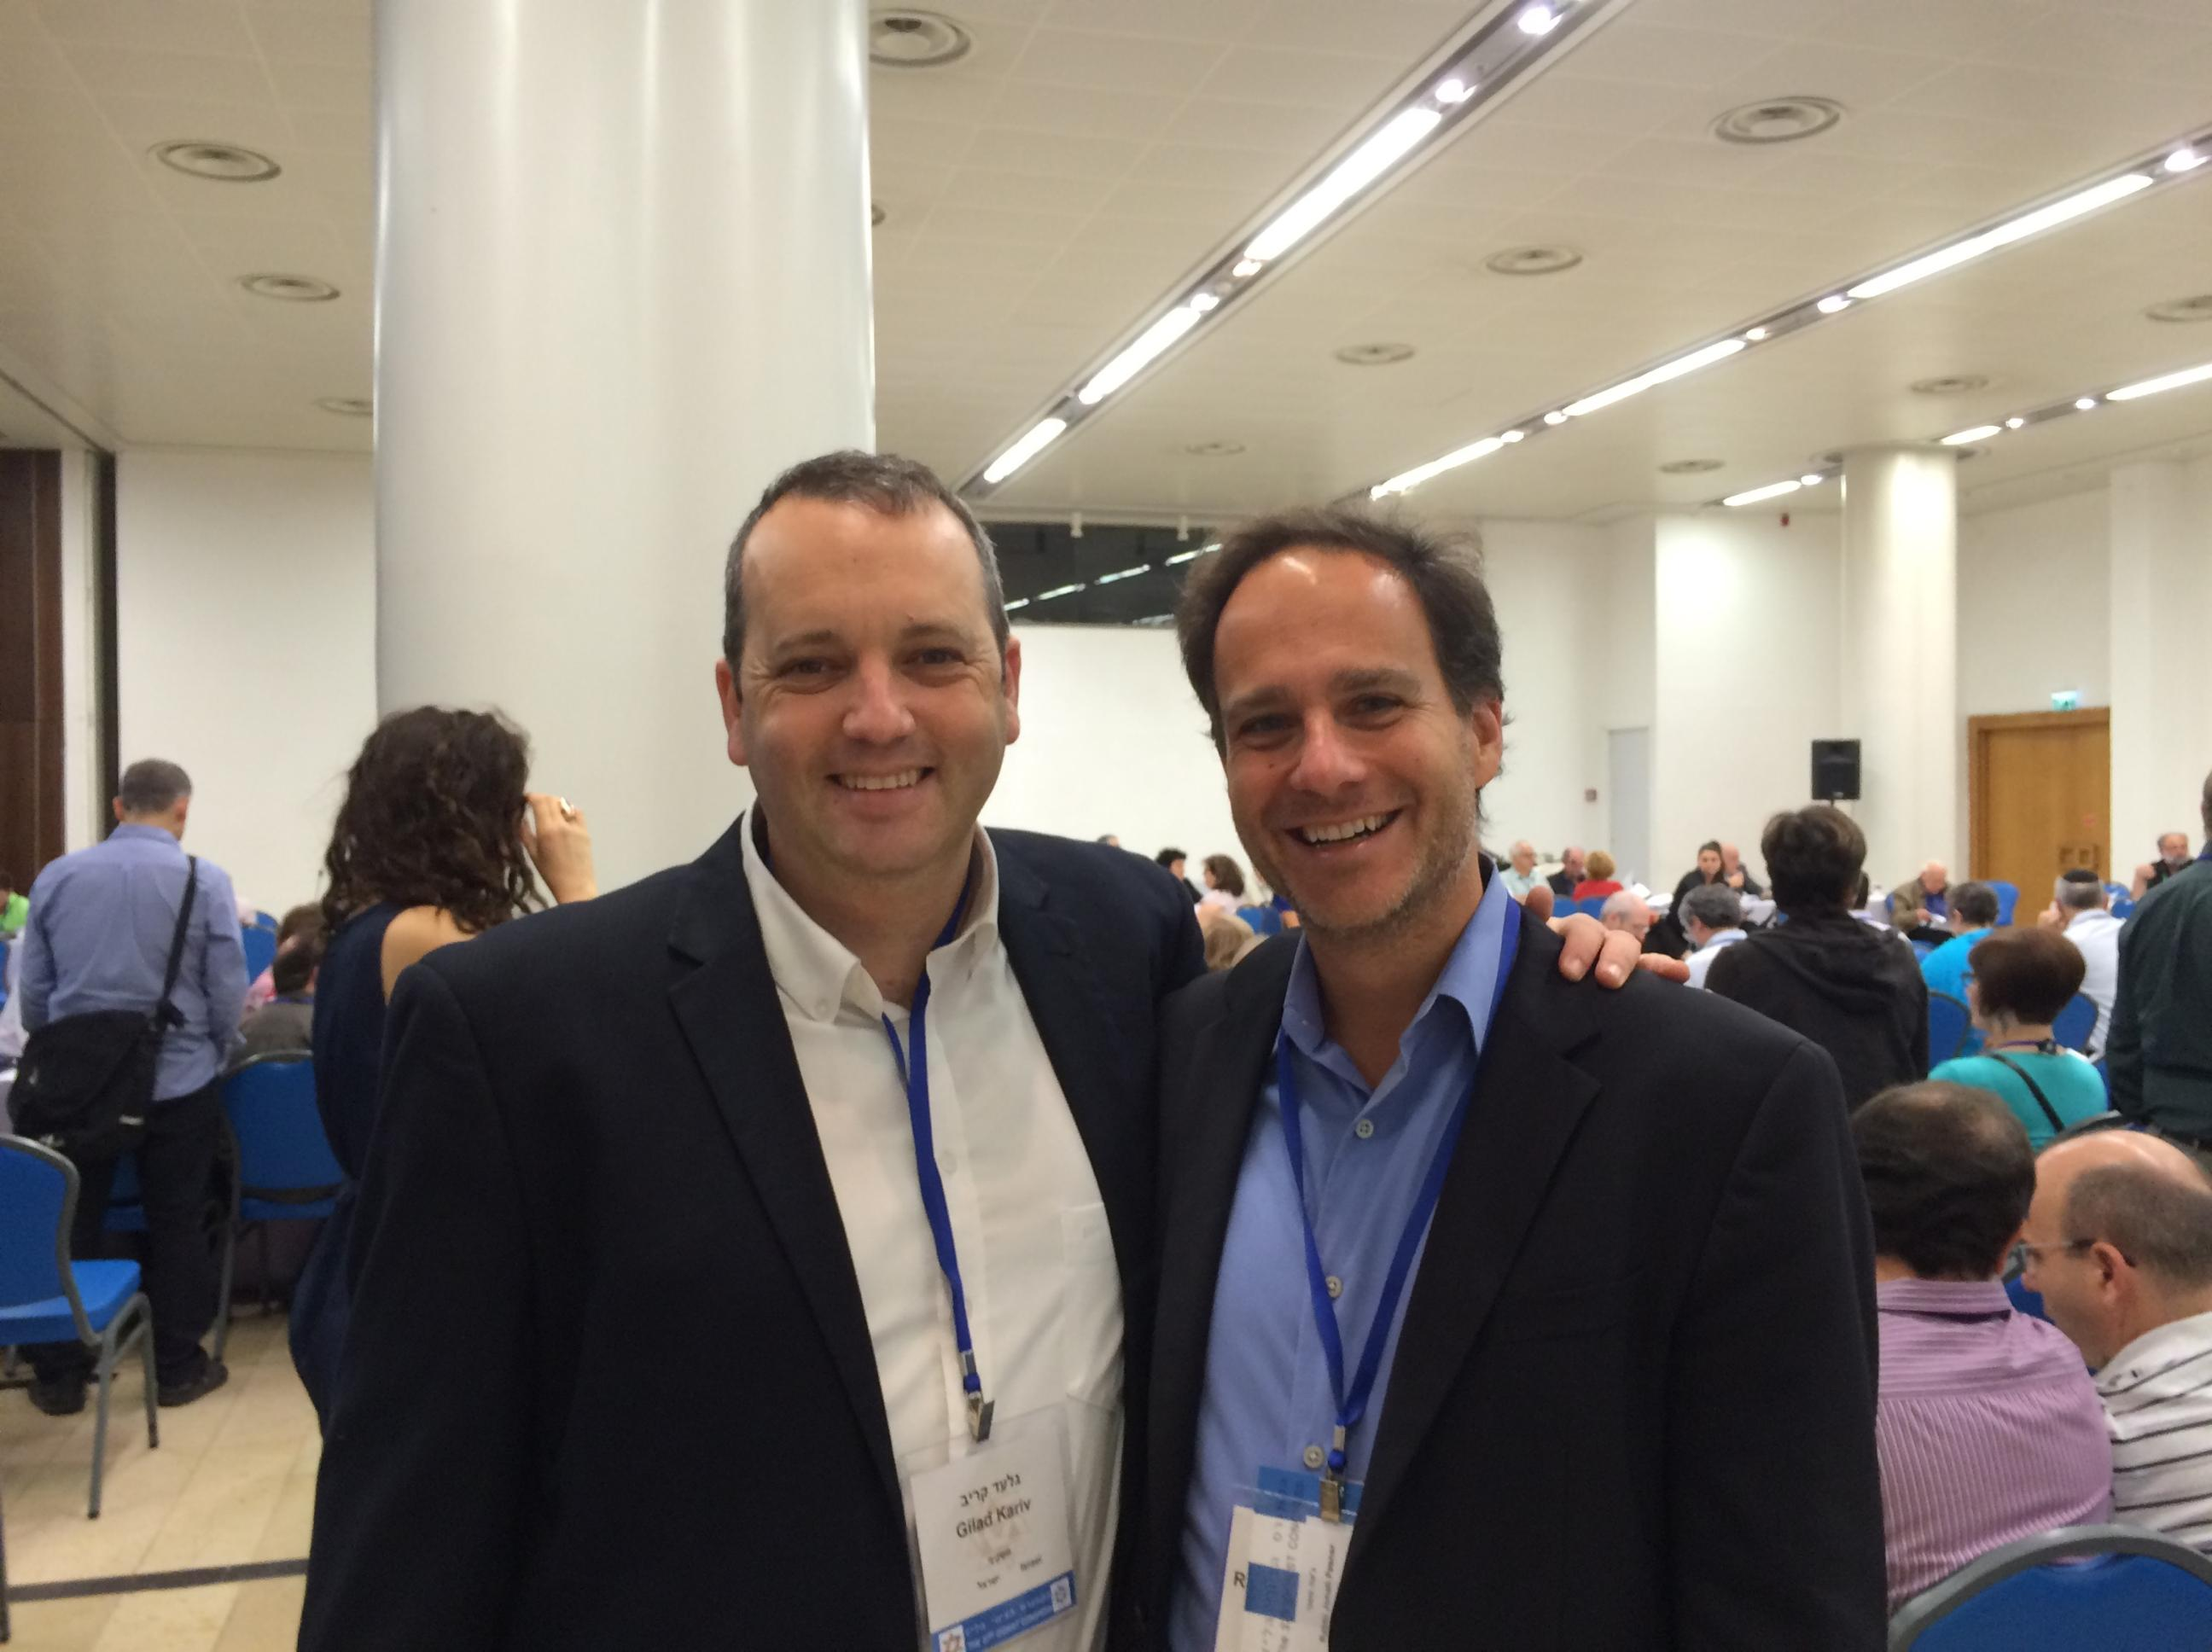 RAC Director Rabbi Jonah Dov Pesner with IMPJ Executive Director Gilad Kariv at the WZC